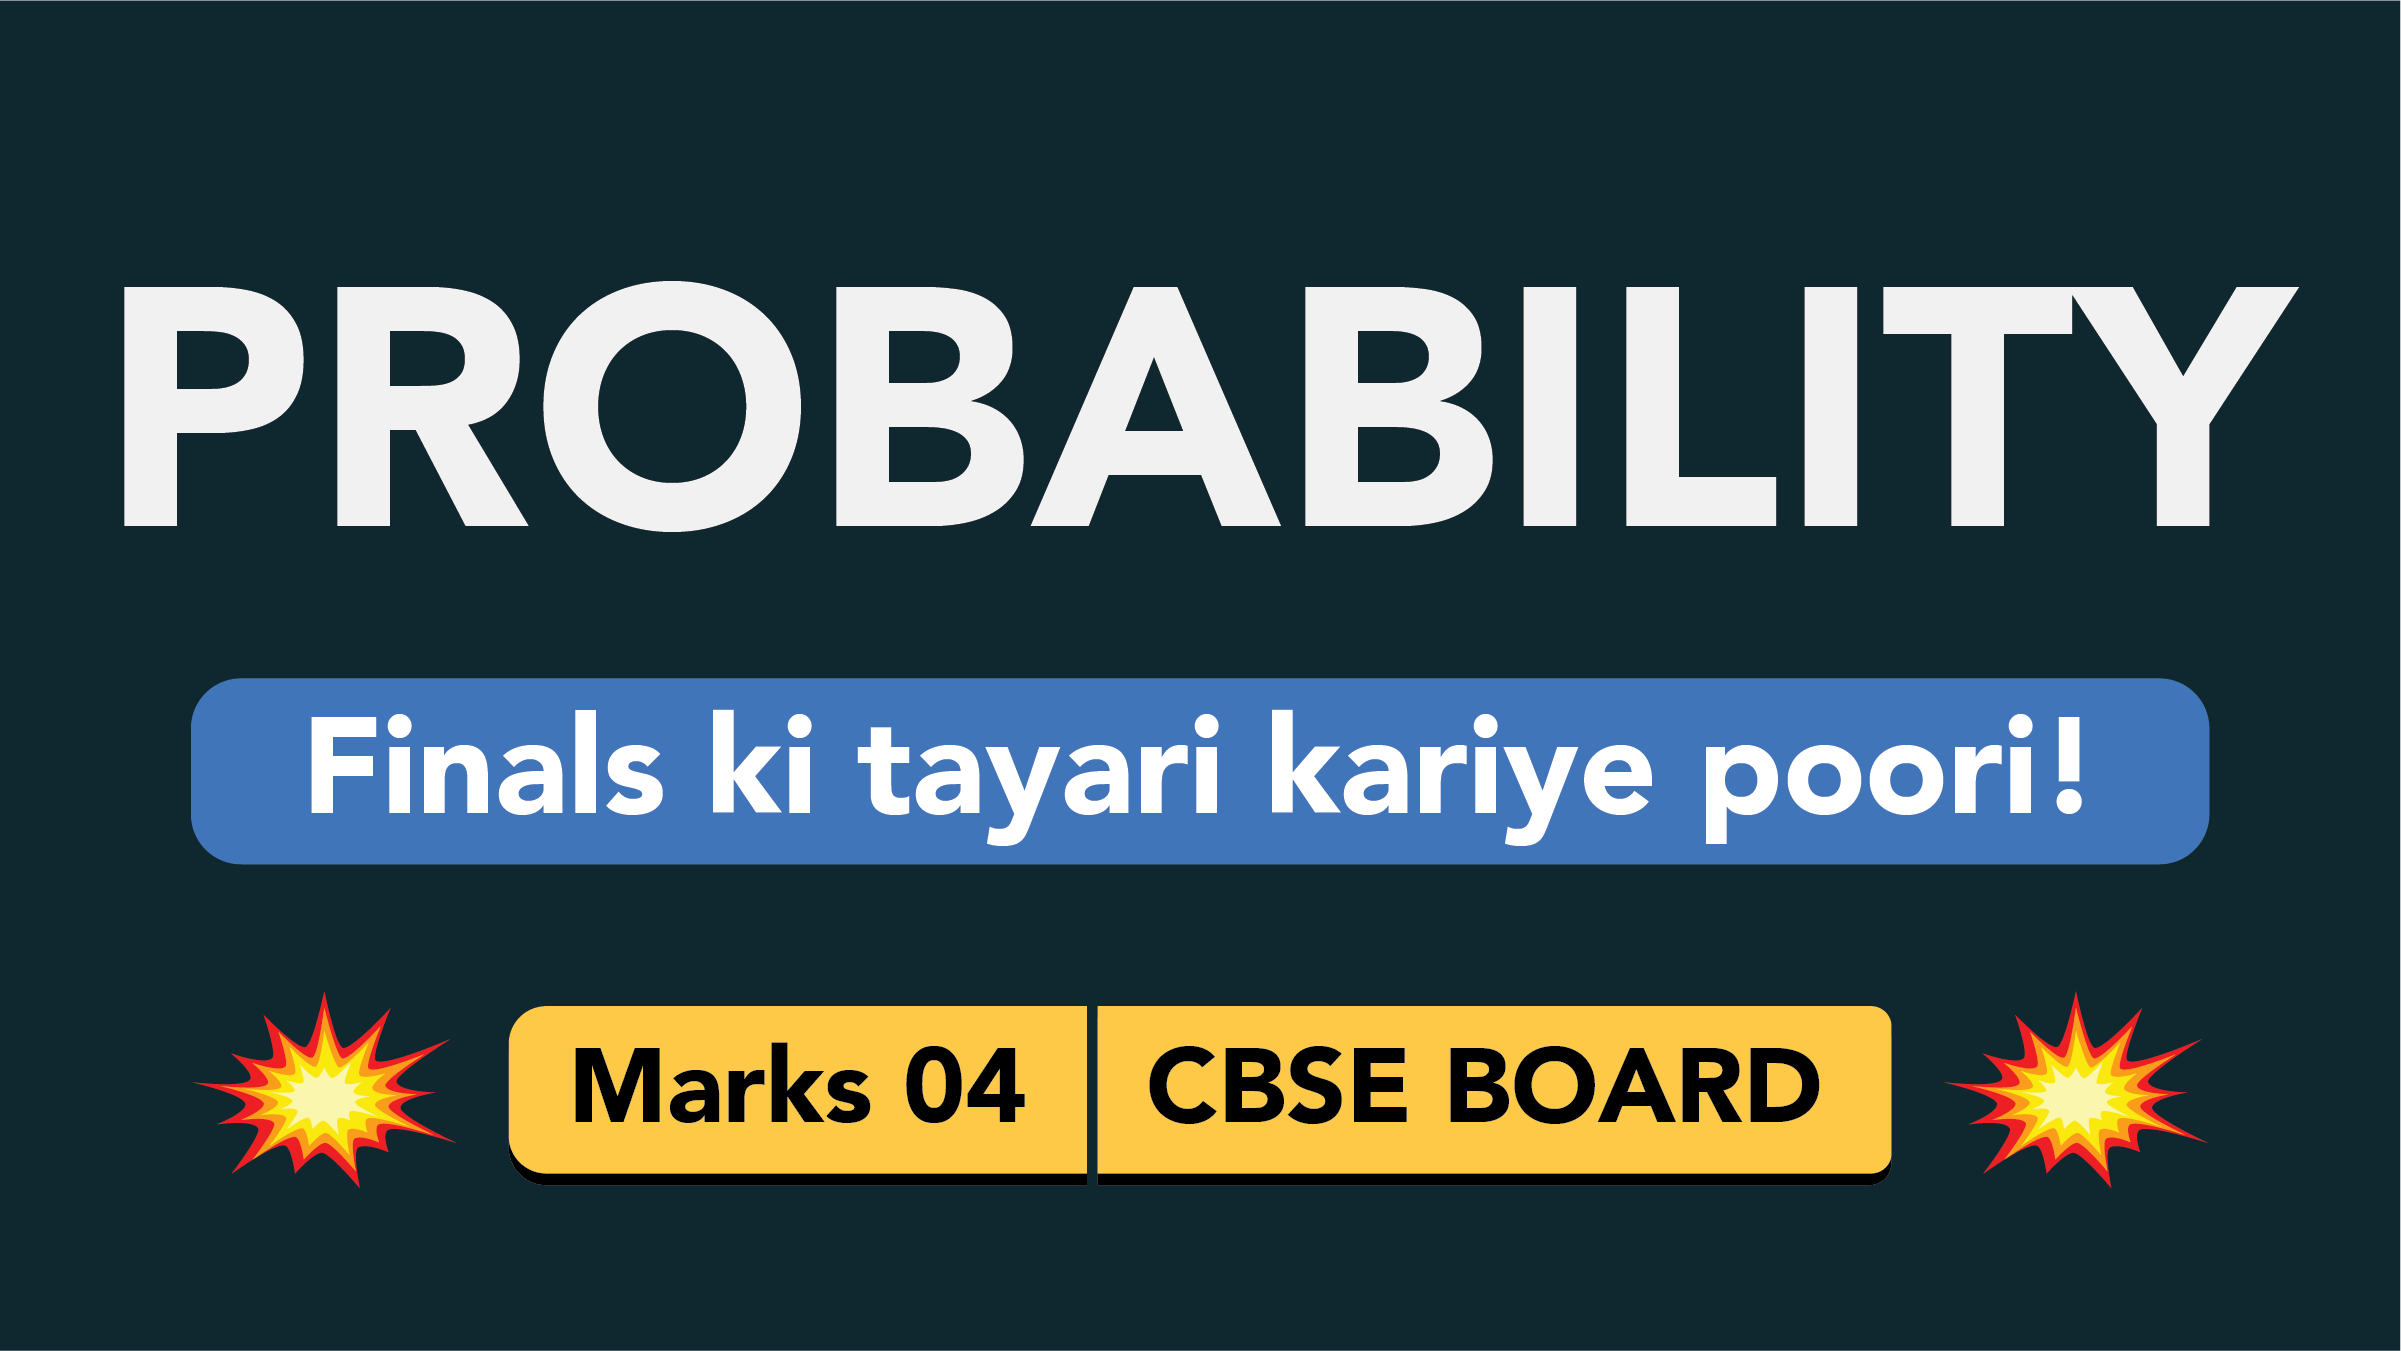 CBSE Board Class 9 PROBABILITY || Weightage and Important Topics